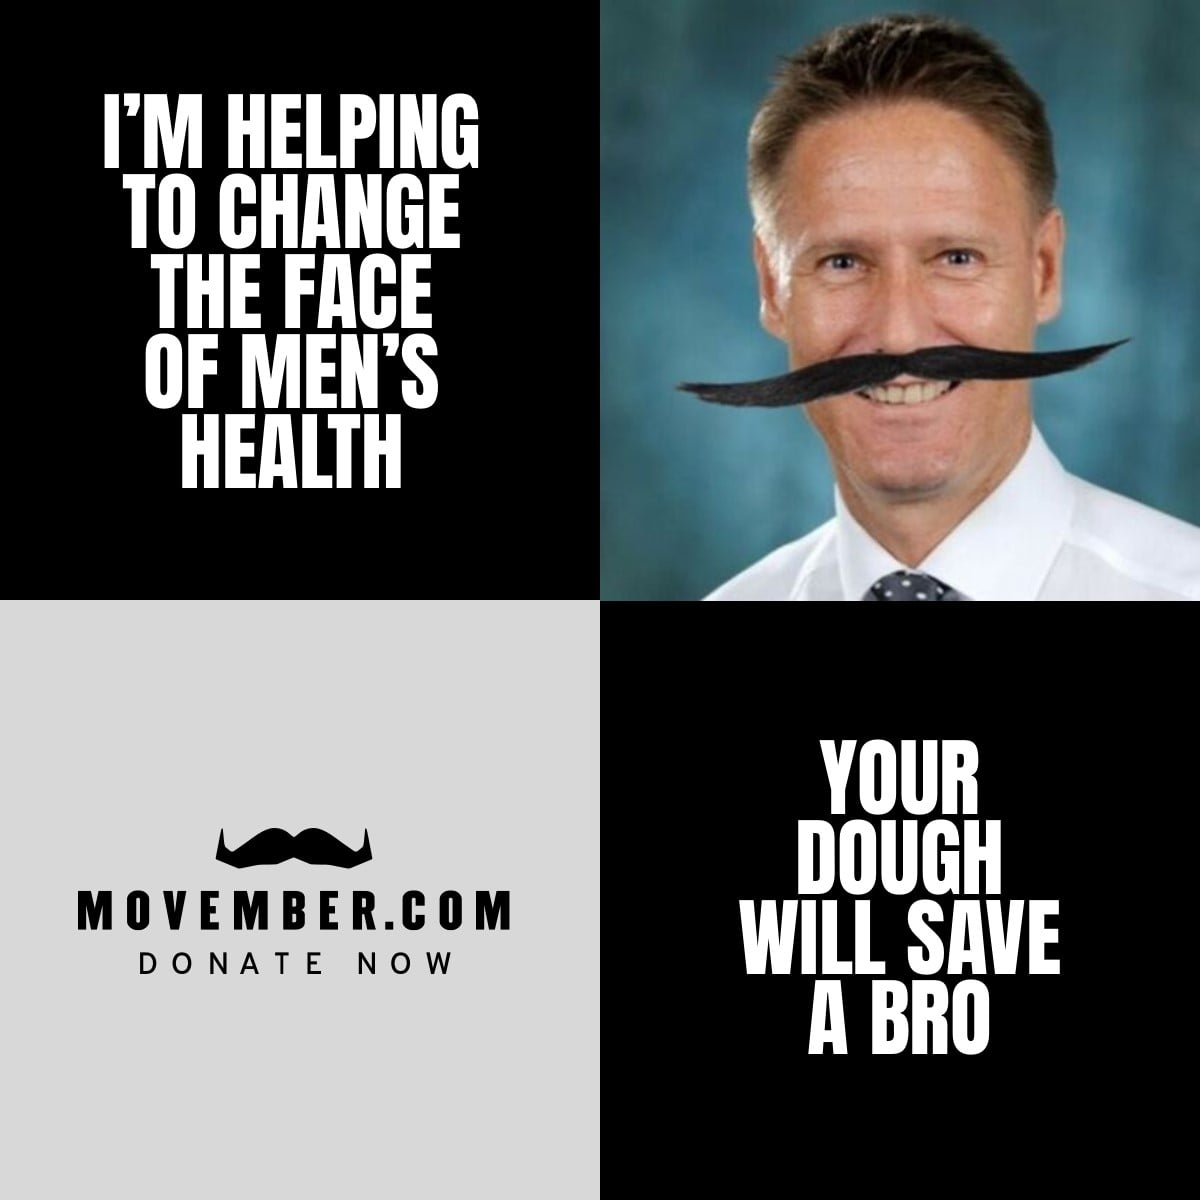 'Movember' Movement & The British International School Budapest